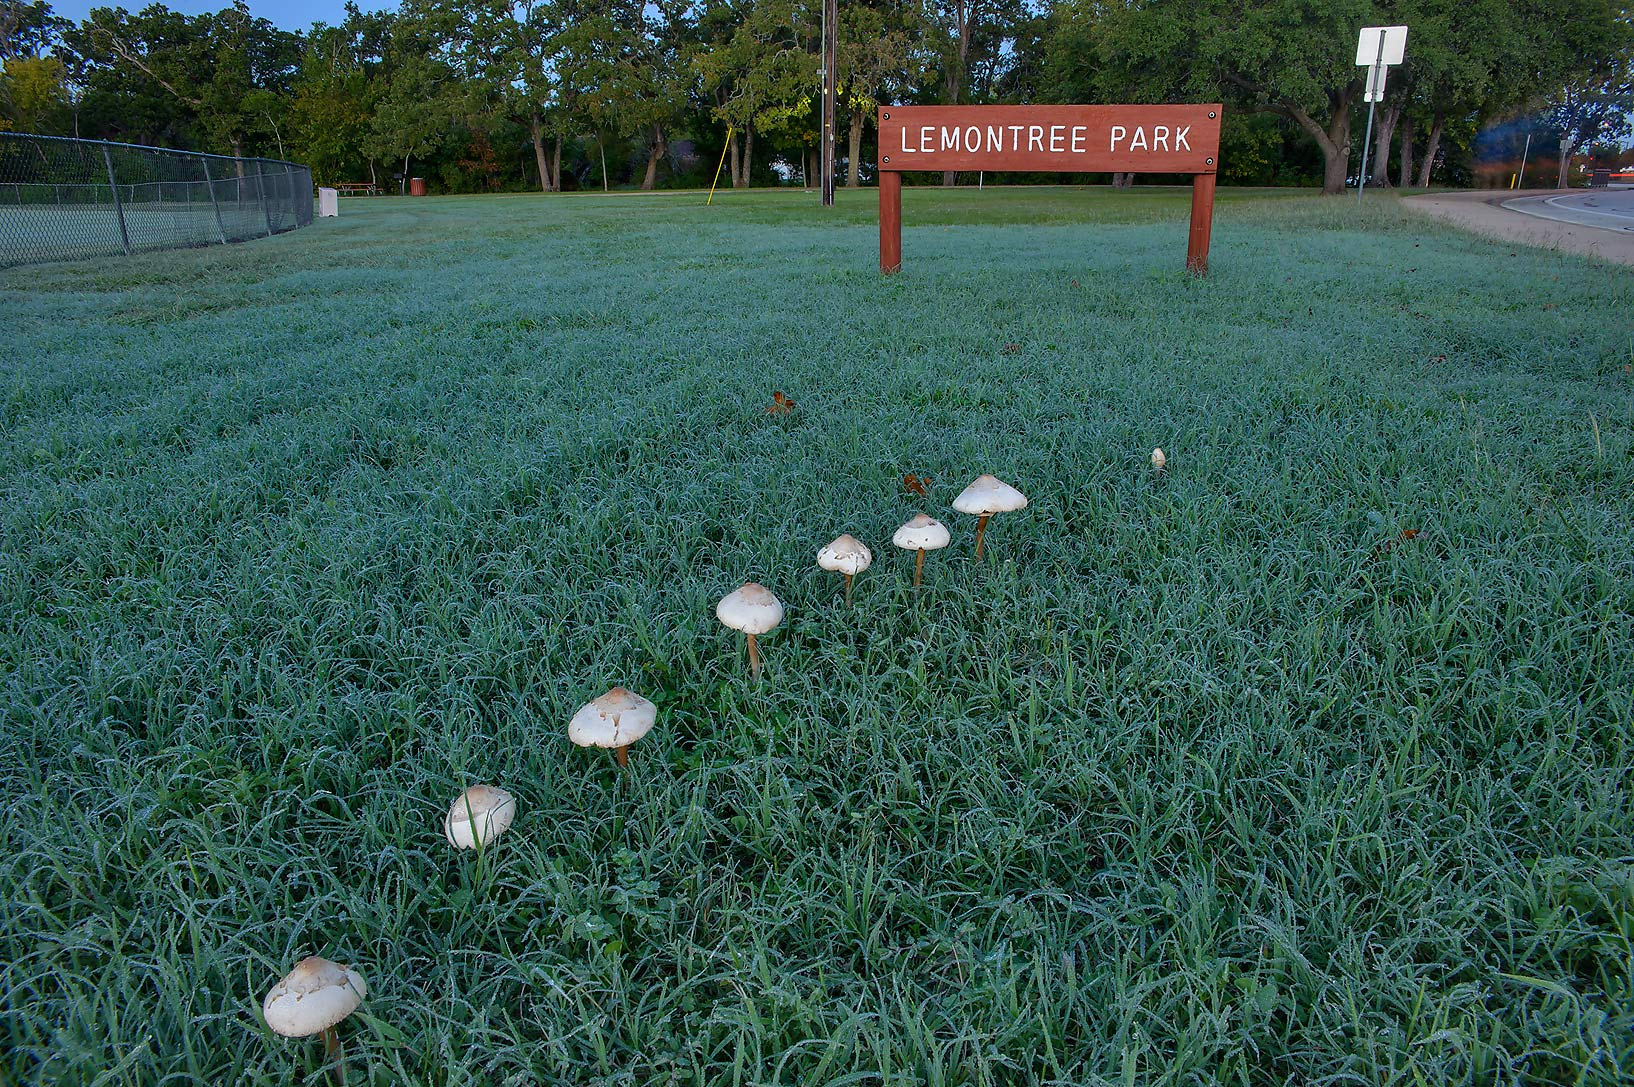 Fairy ring of false parasol mushrooms...Lemontree Park. College Station, Texas